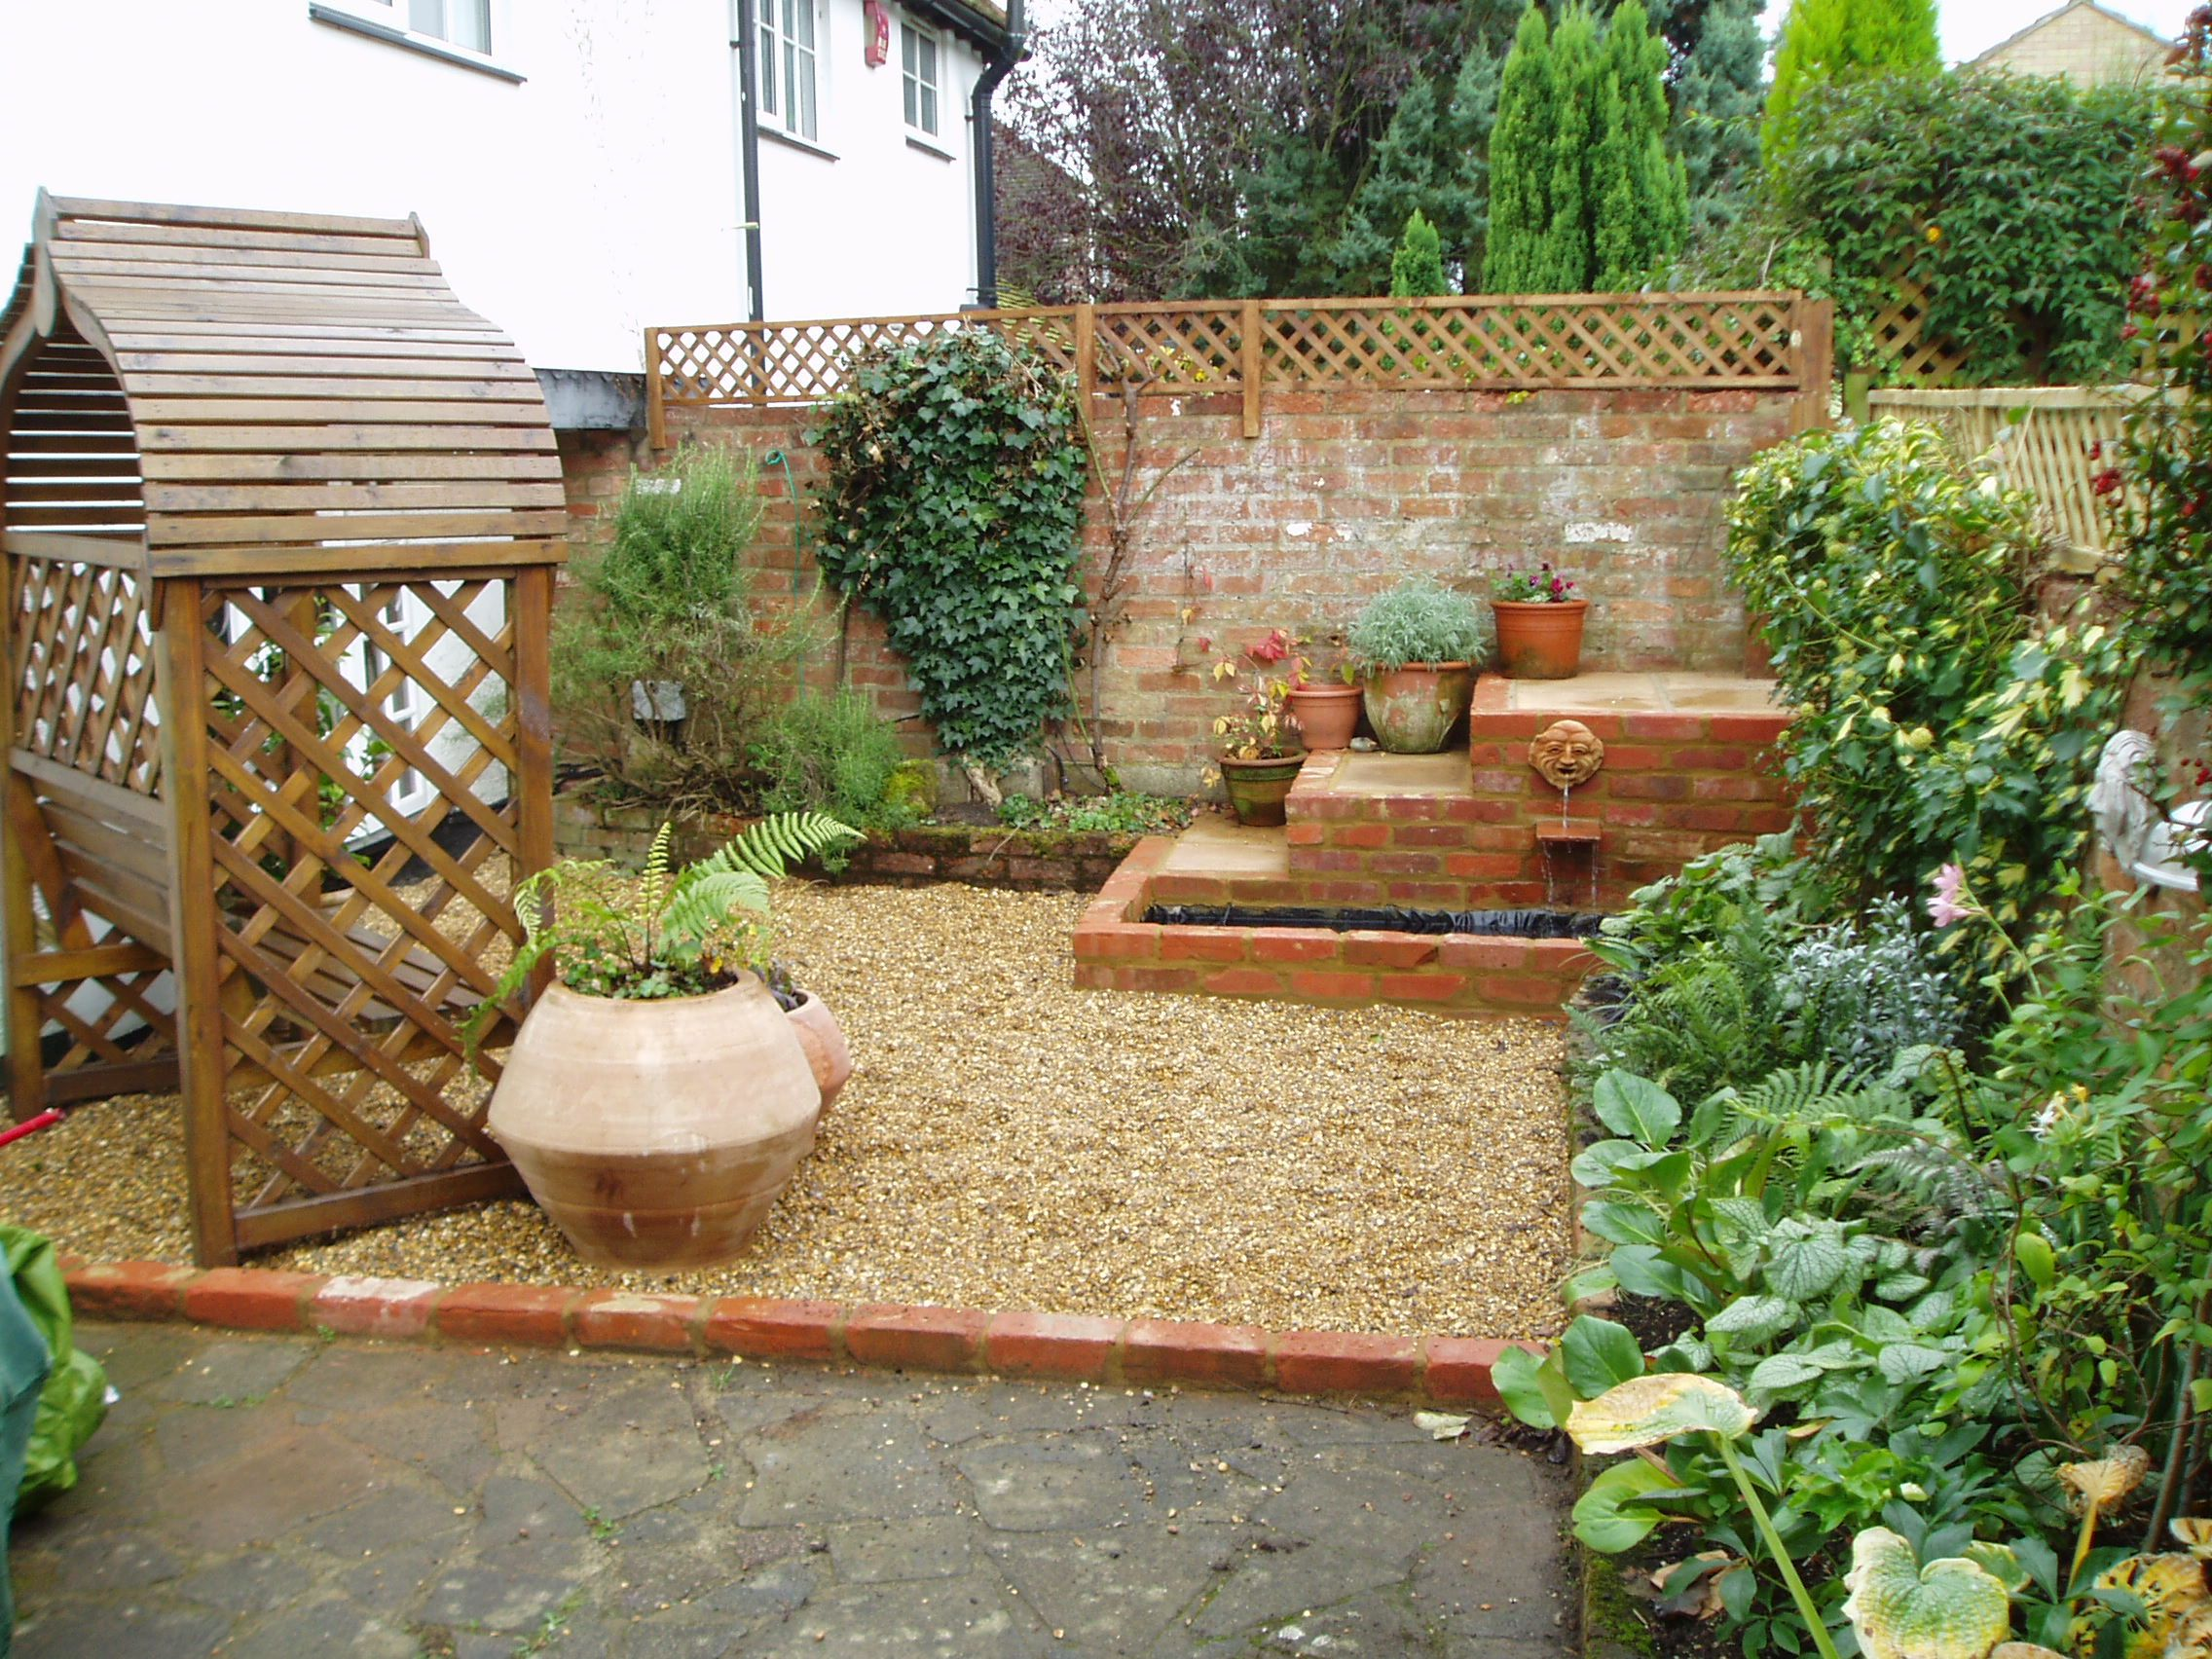 Best Of Garden Ideas for Small Spaces